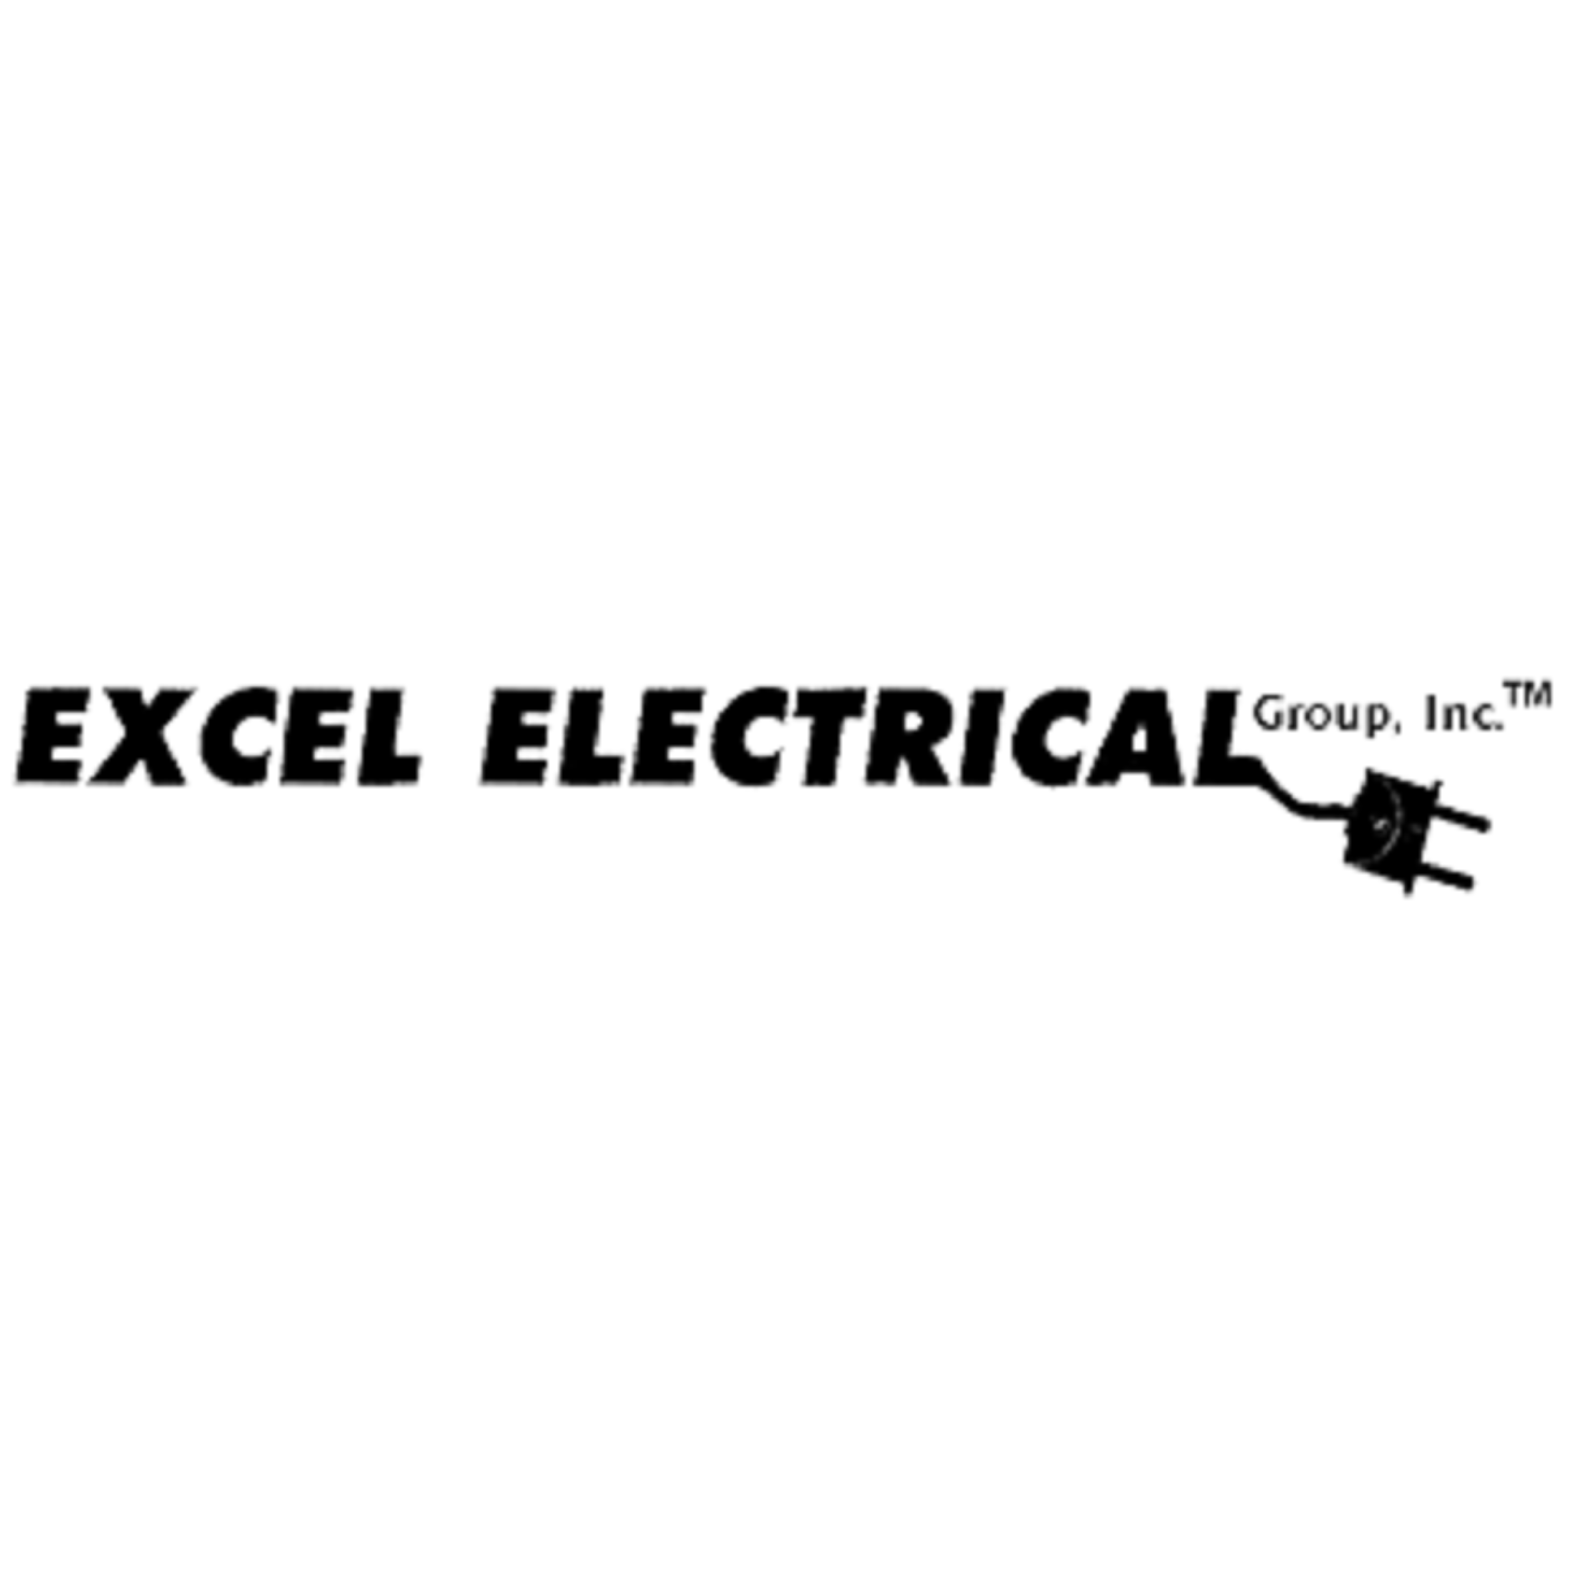 Excel Electrical Group, Inc.